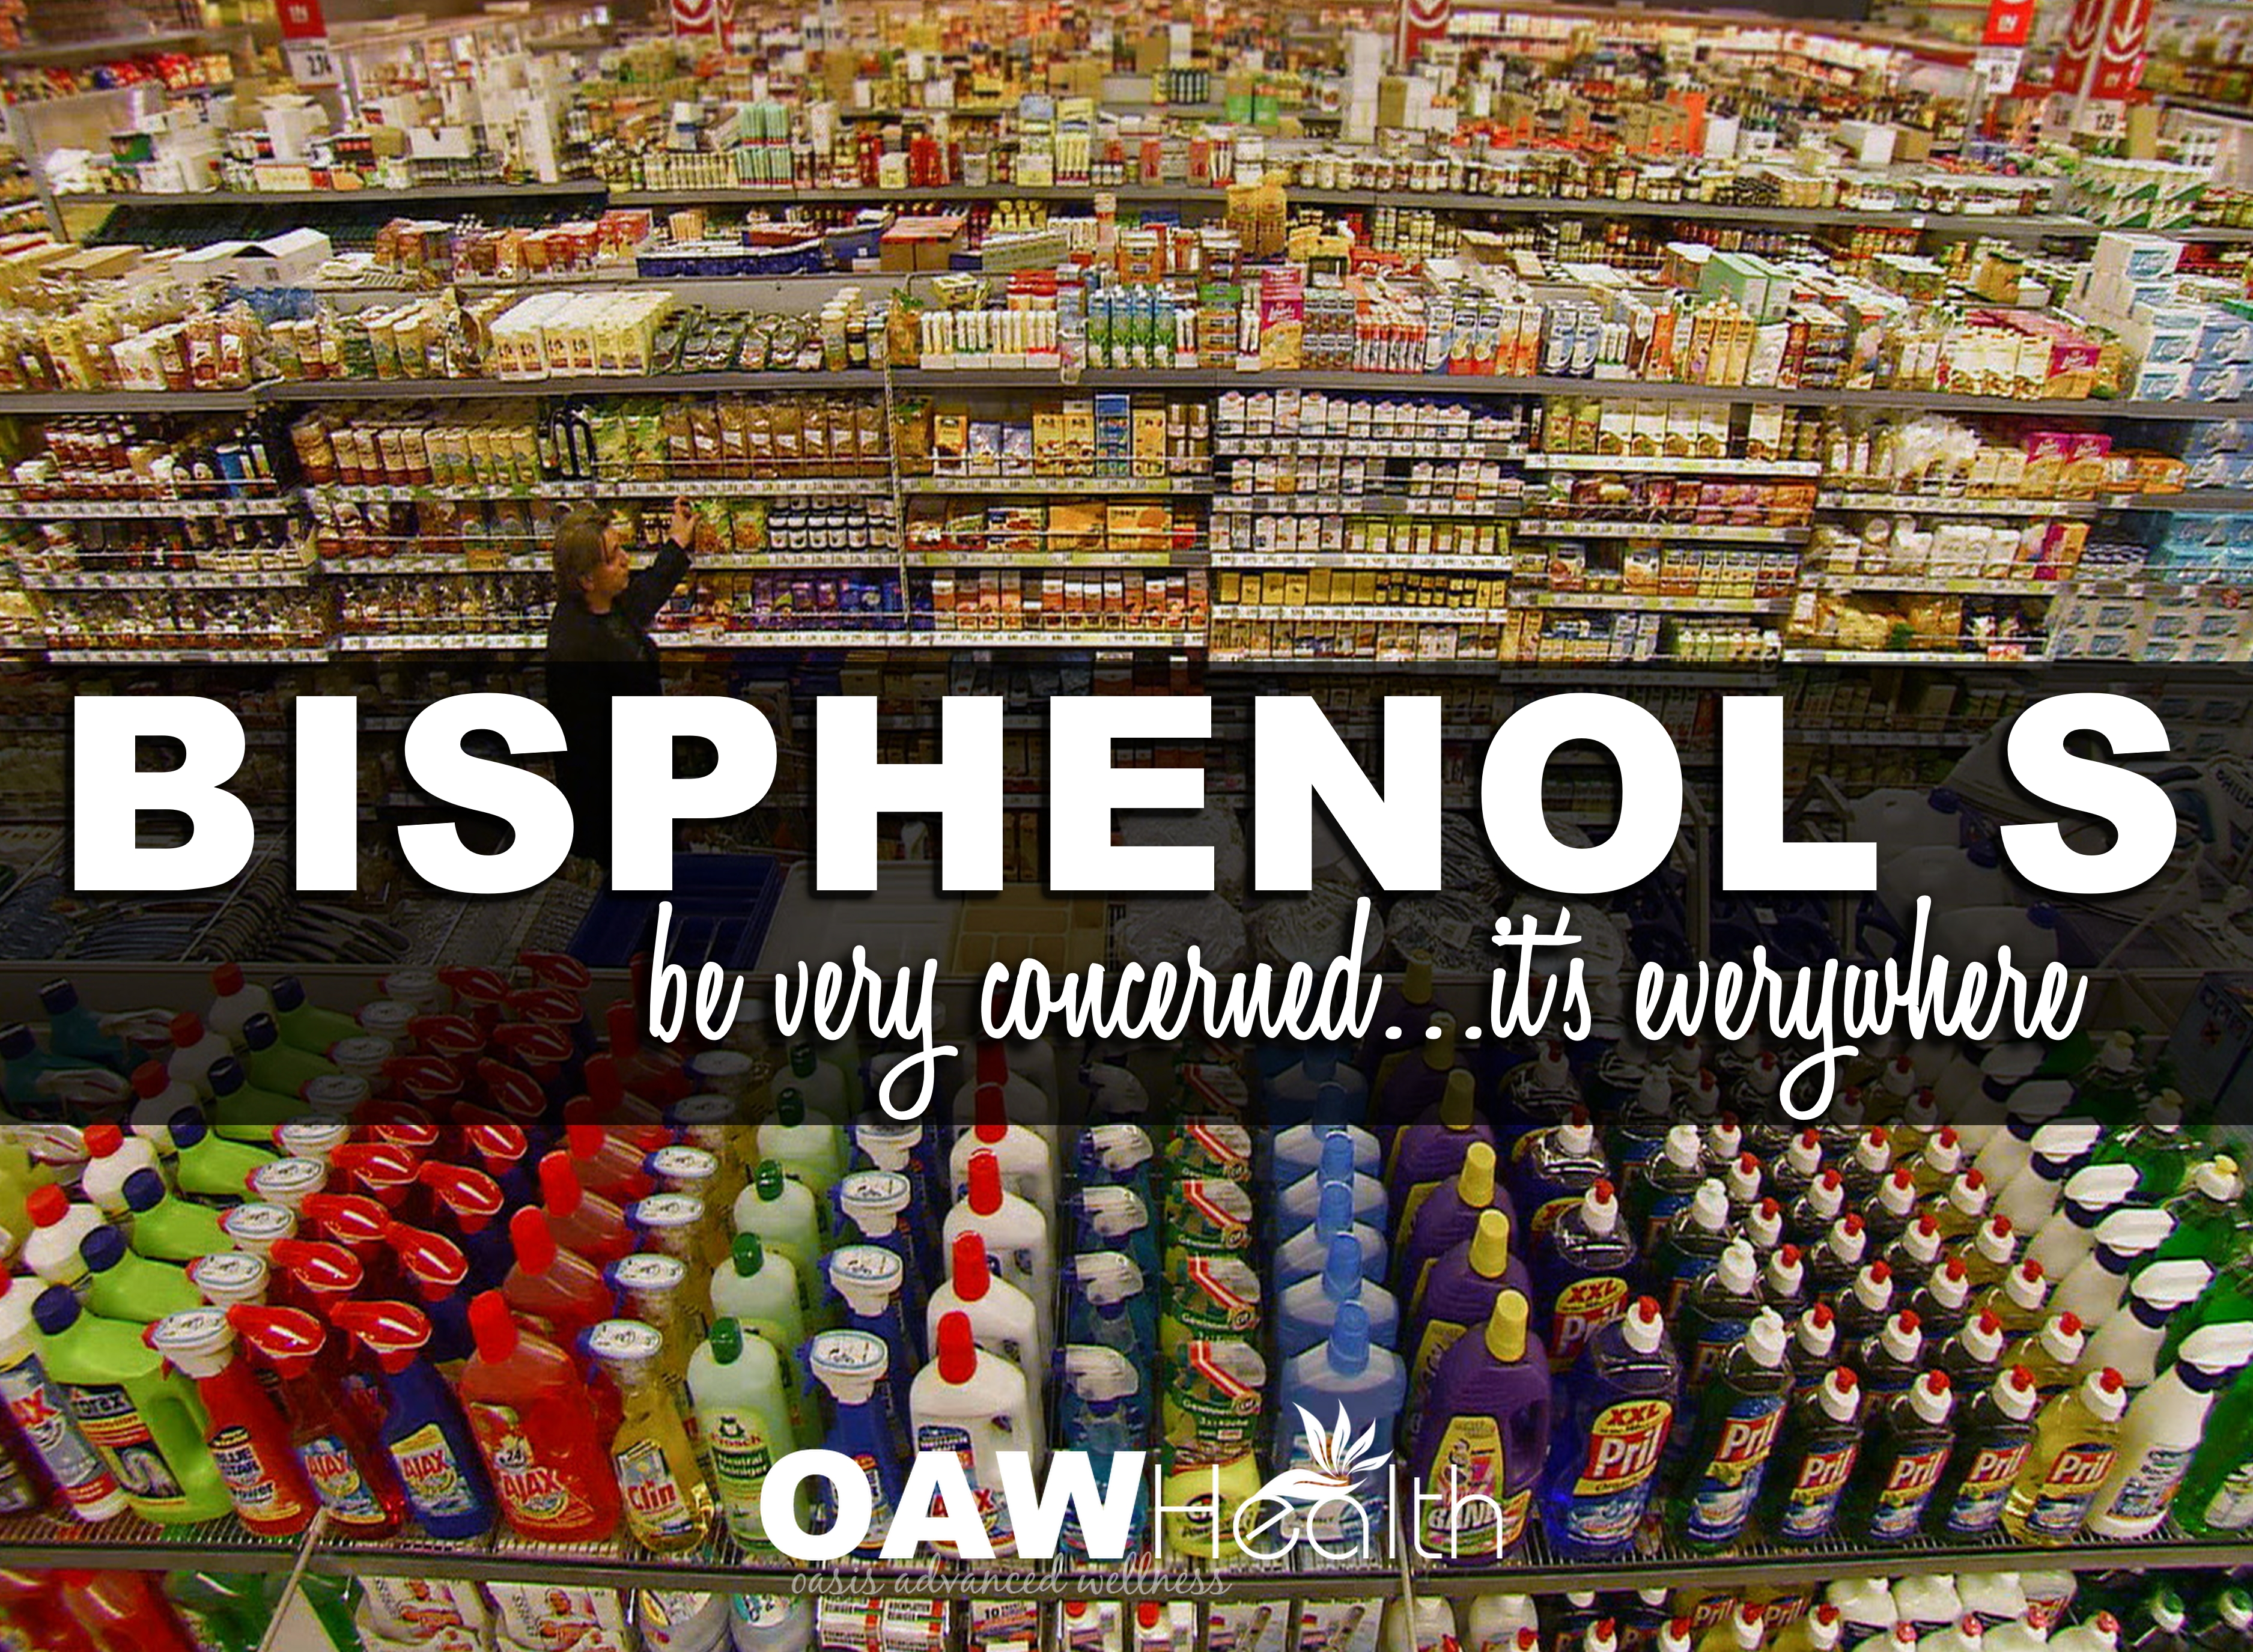 Be Very Concerned About Bisphenol S